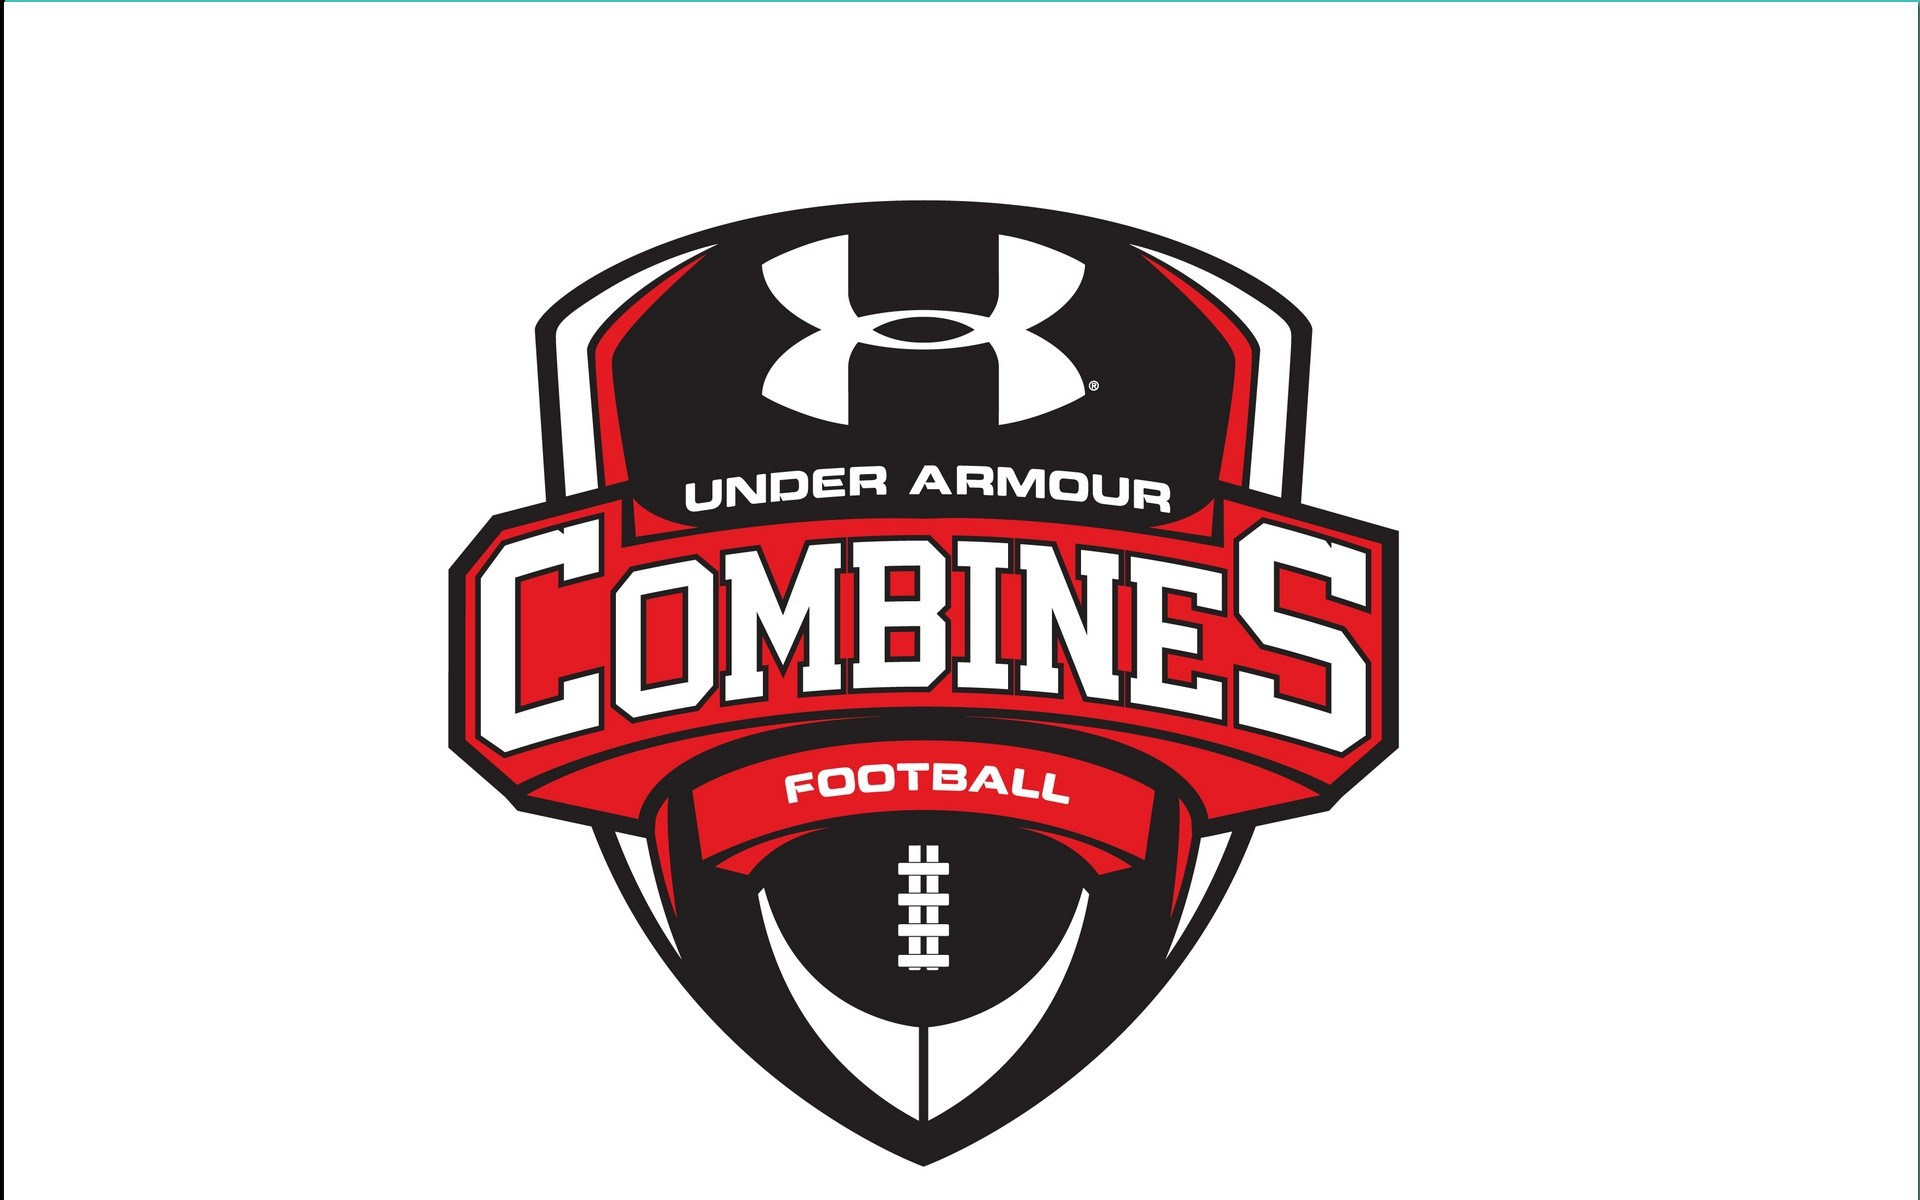 Under Armour combine football logo wallpapers and images   wallpapers 1920x1200